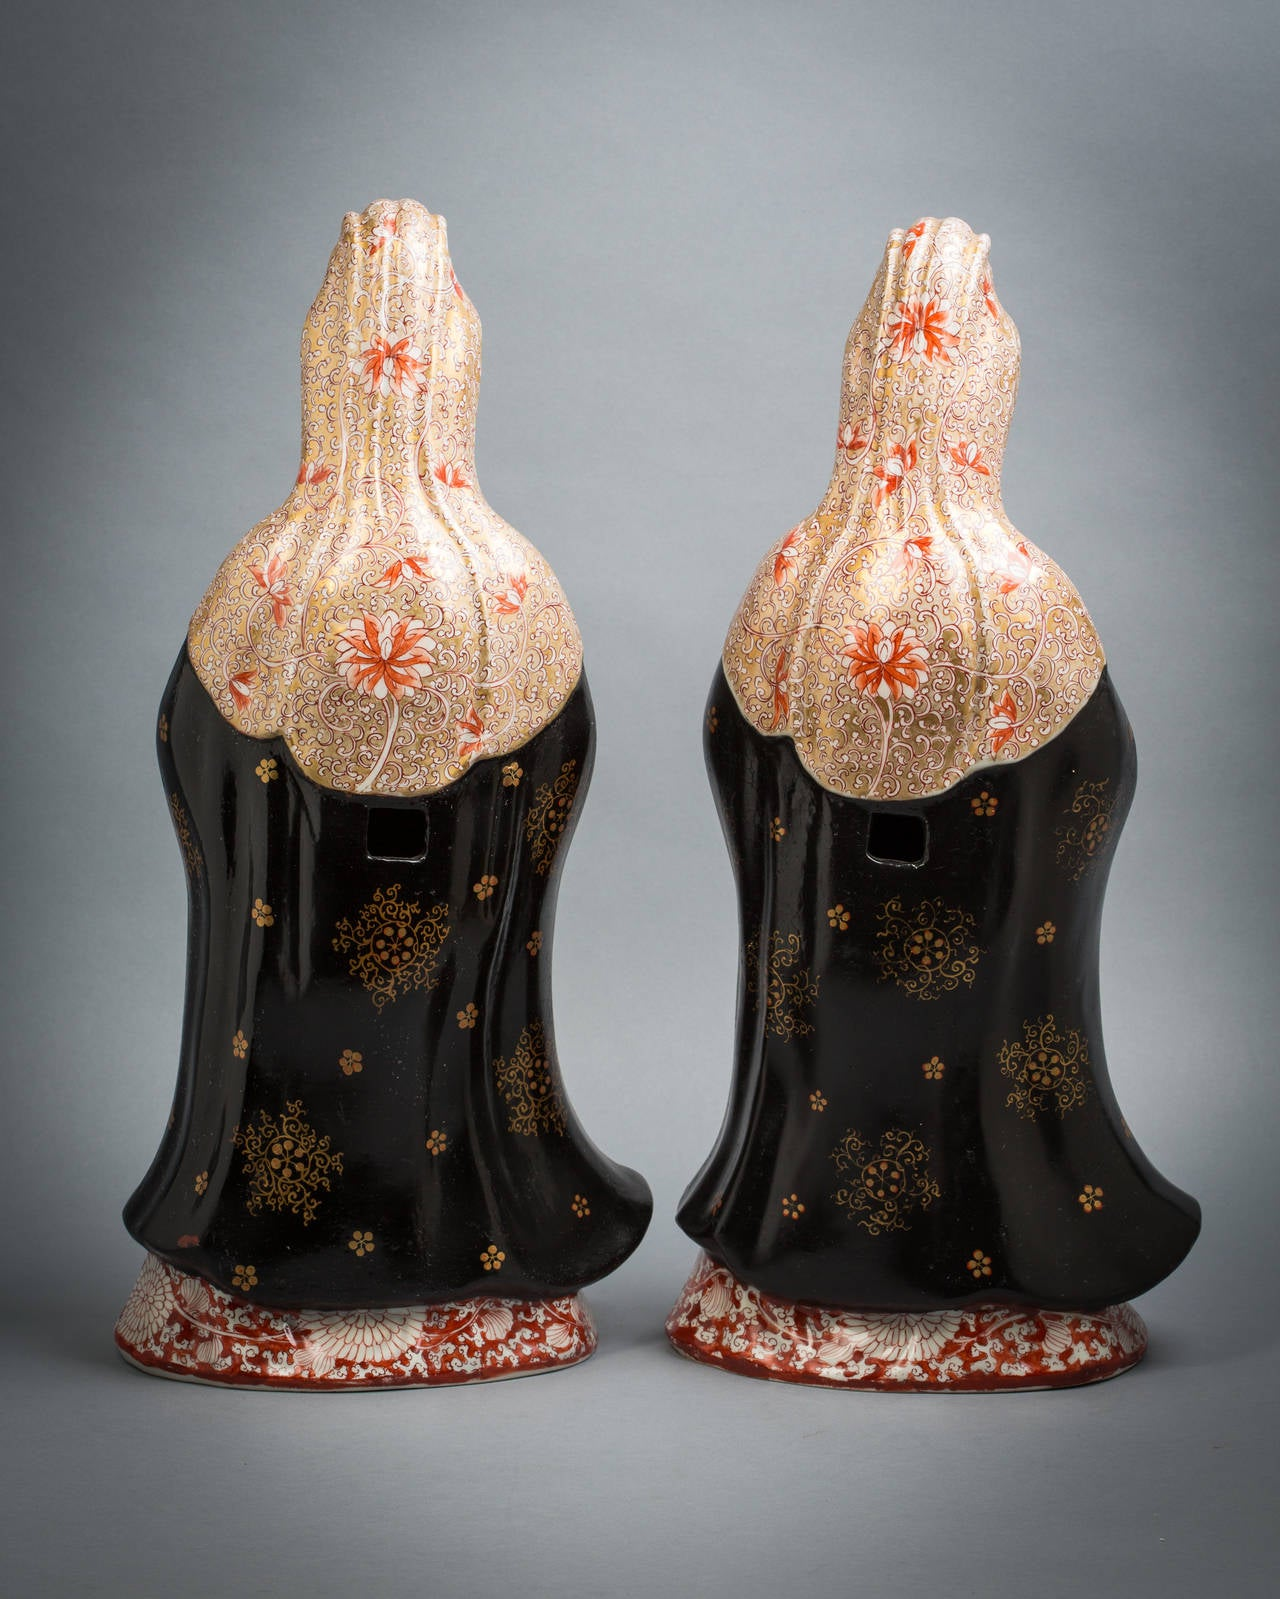 Pair of French porcelain chinoiserie figures, circa 1840.